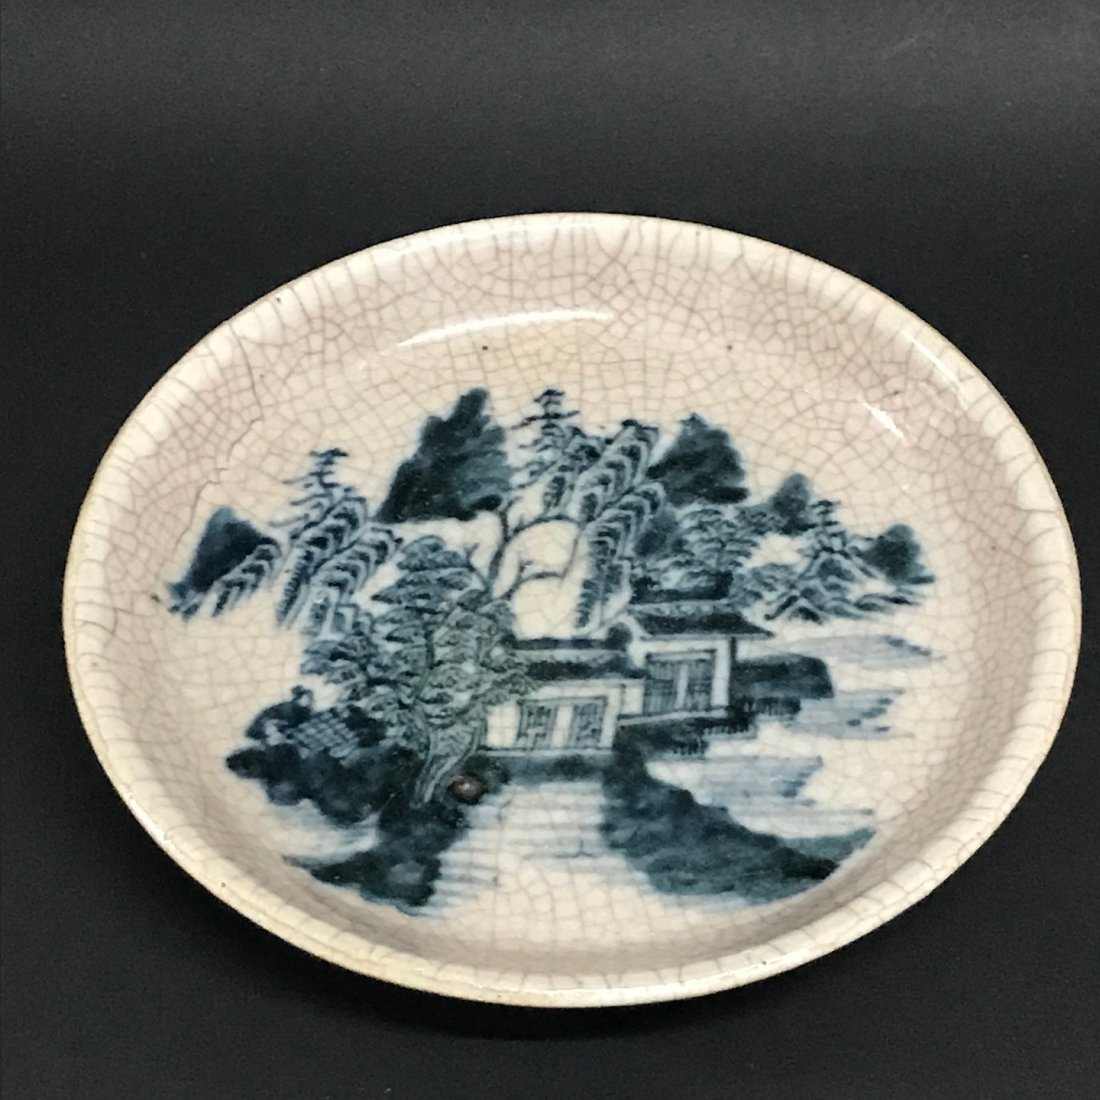 Porcelain Crackled  Blue and White Plate